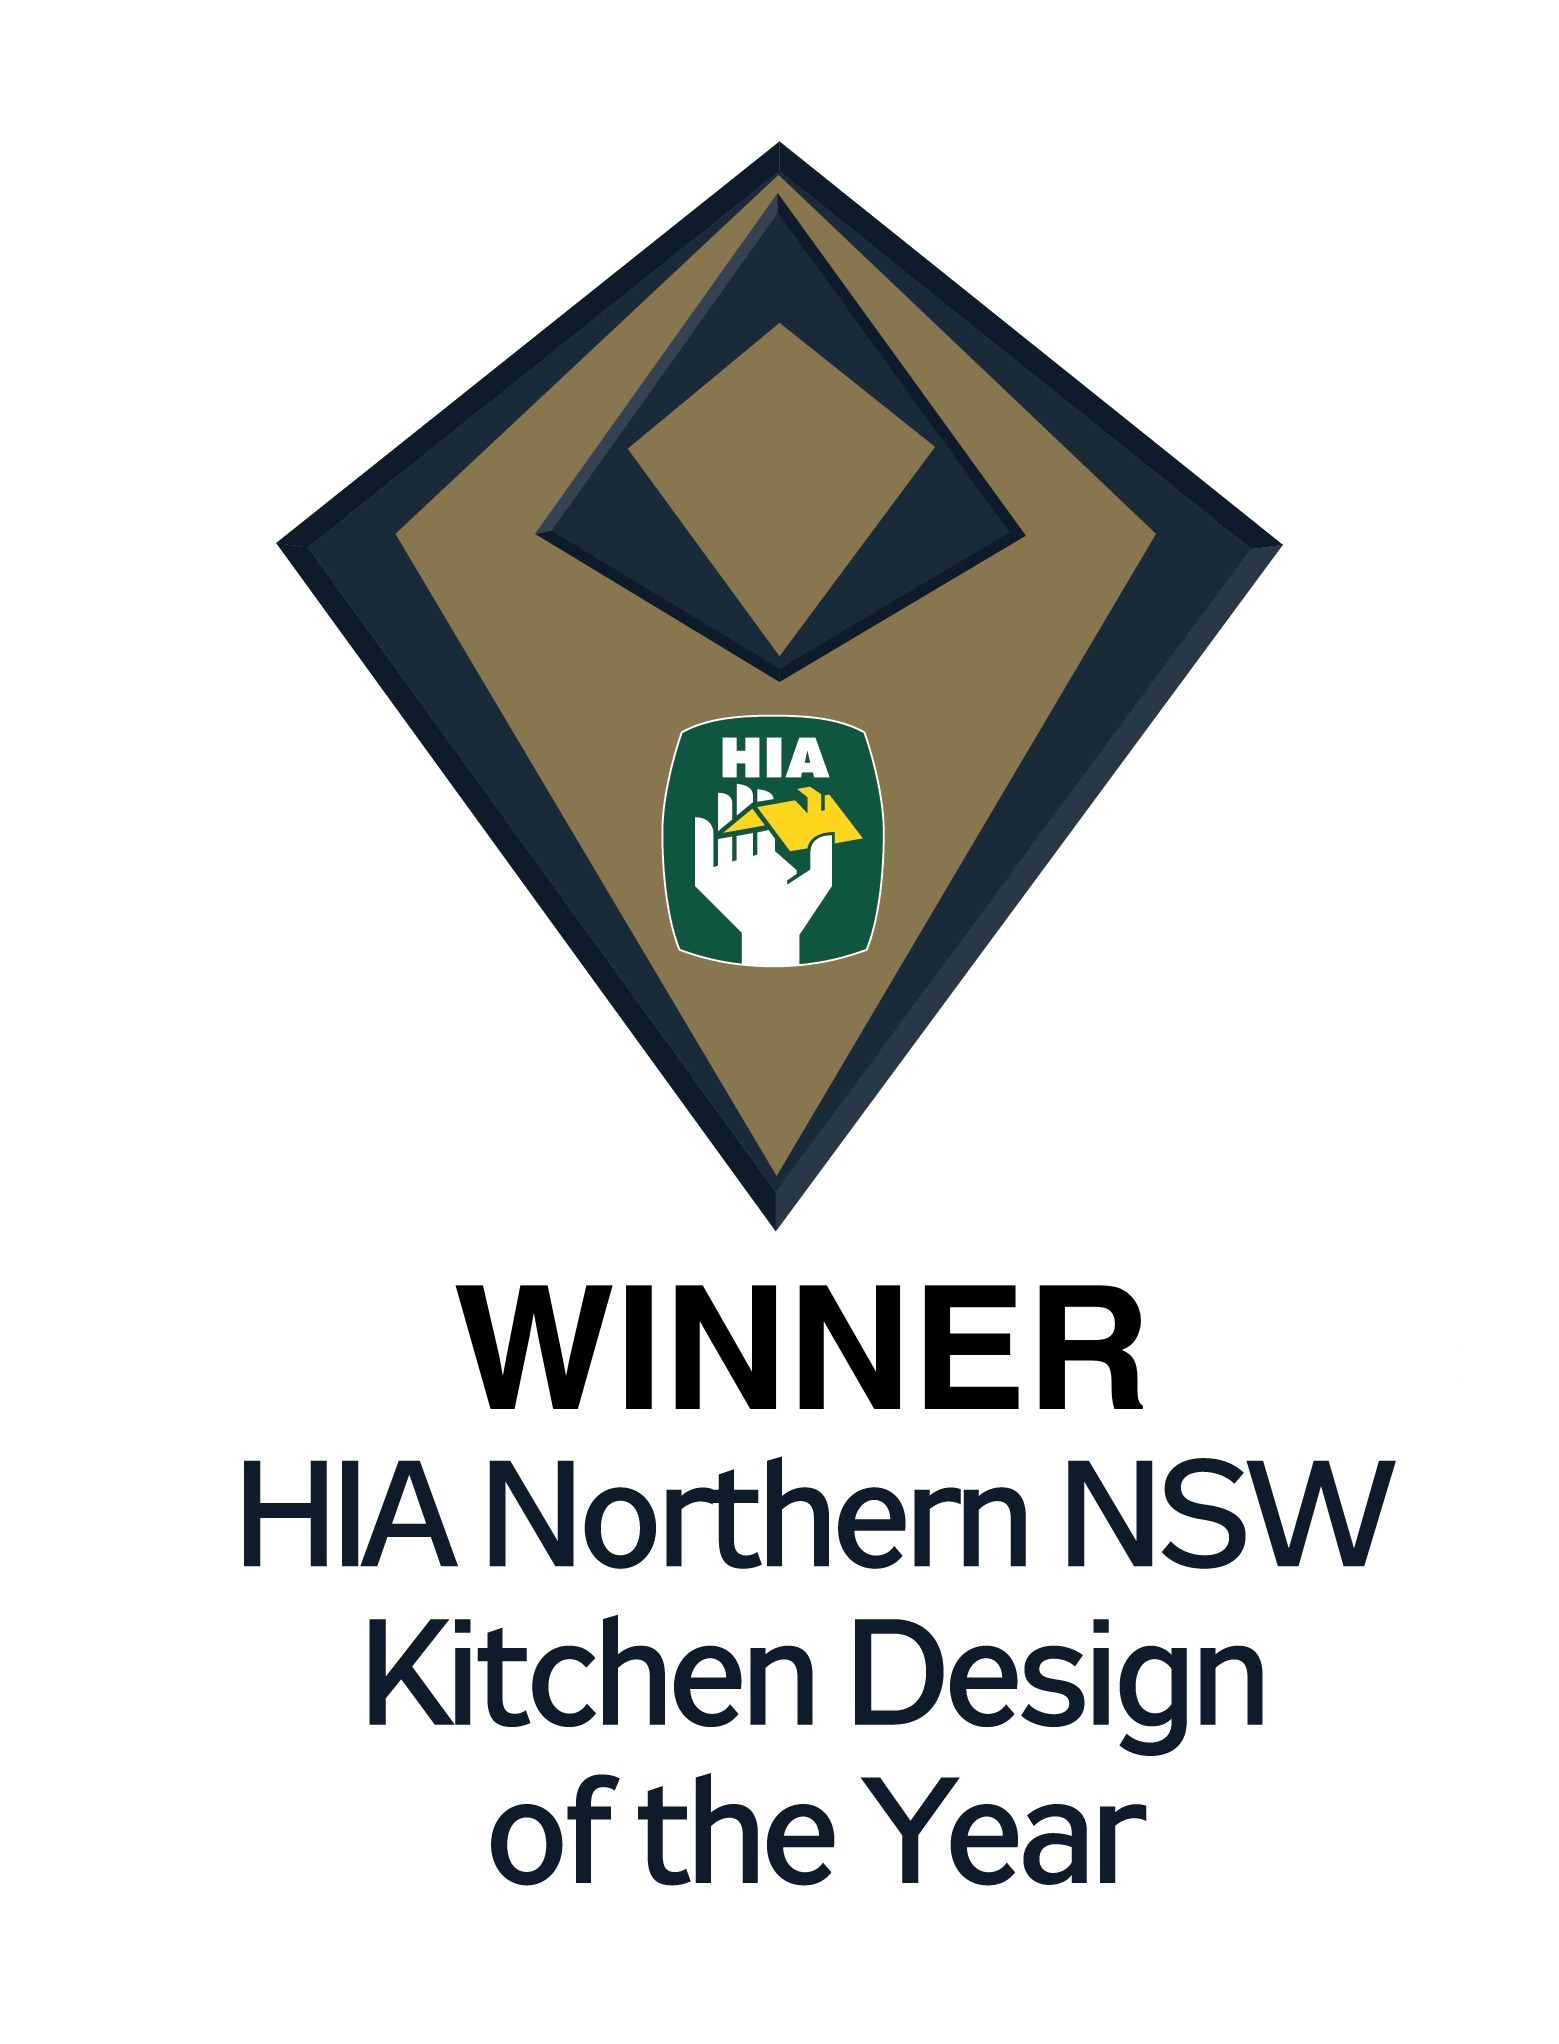 Kitchen designer port macquarie new home north shore 2444 designing divas Hia kitchen design course